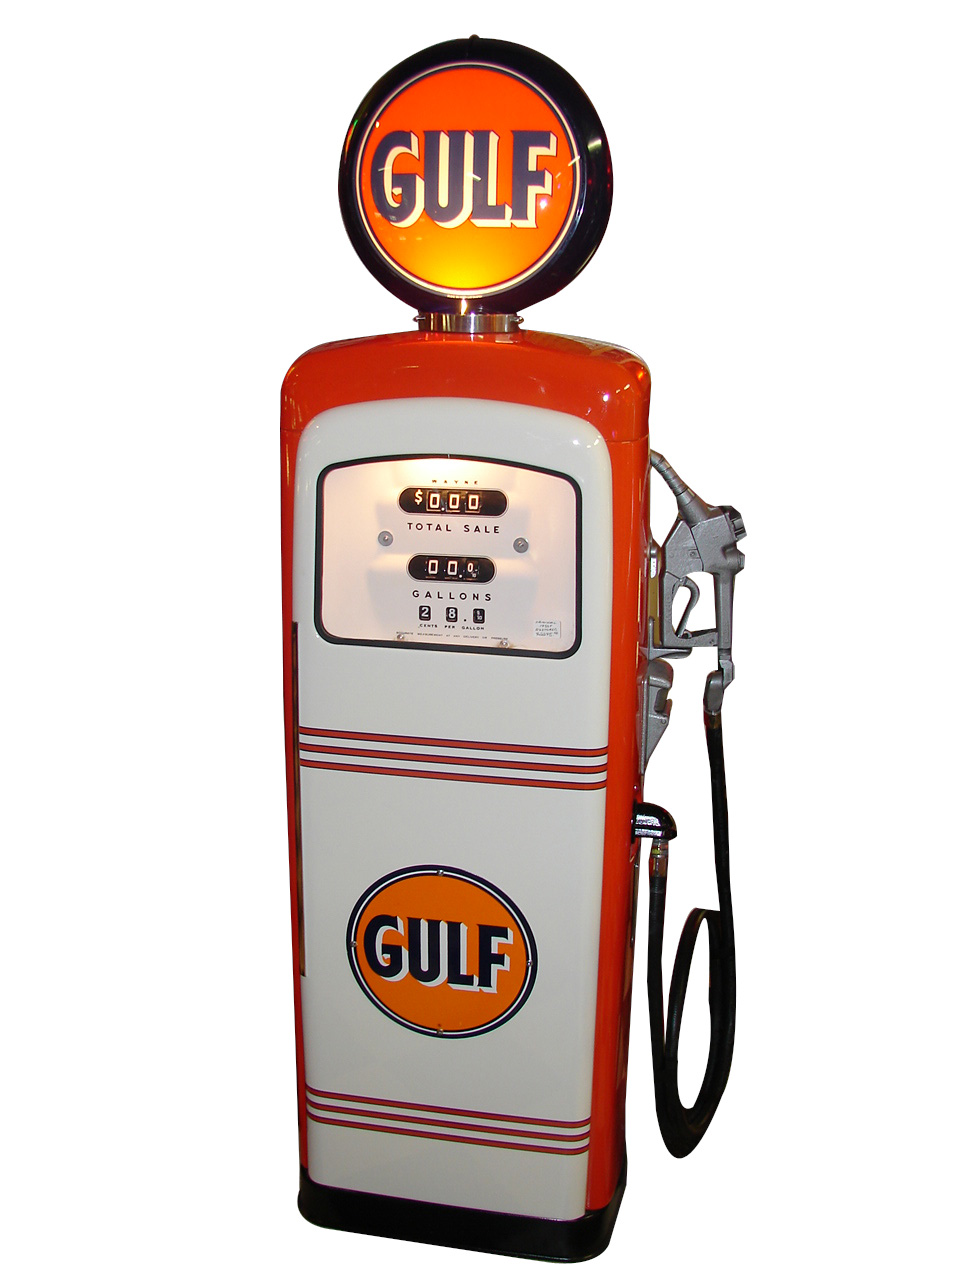 1951 Gulf Oil restored Wayne model #80 service station gas pump.  Restored to show car quality standards. - Front 3/4 - 125628